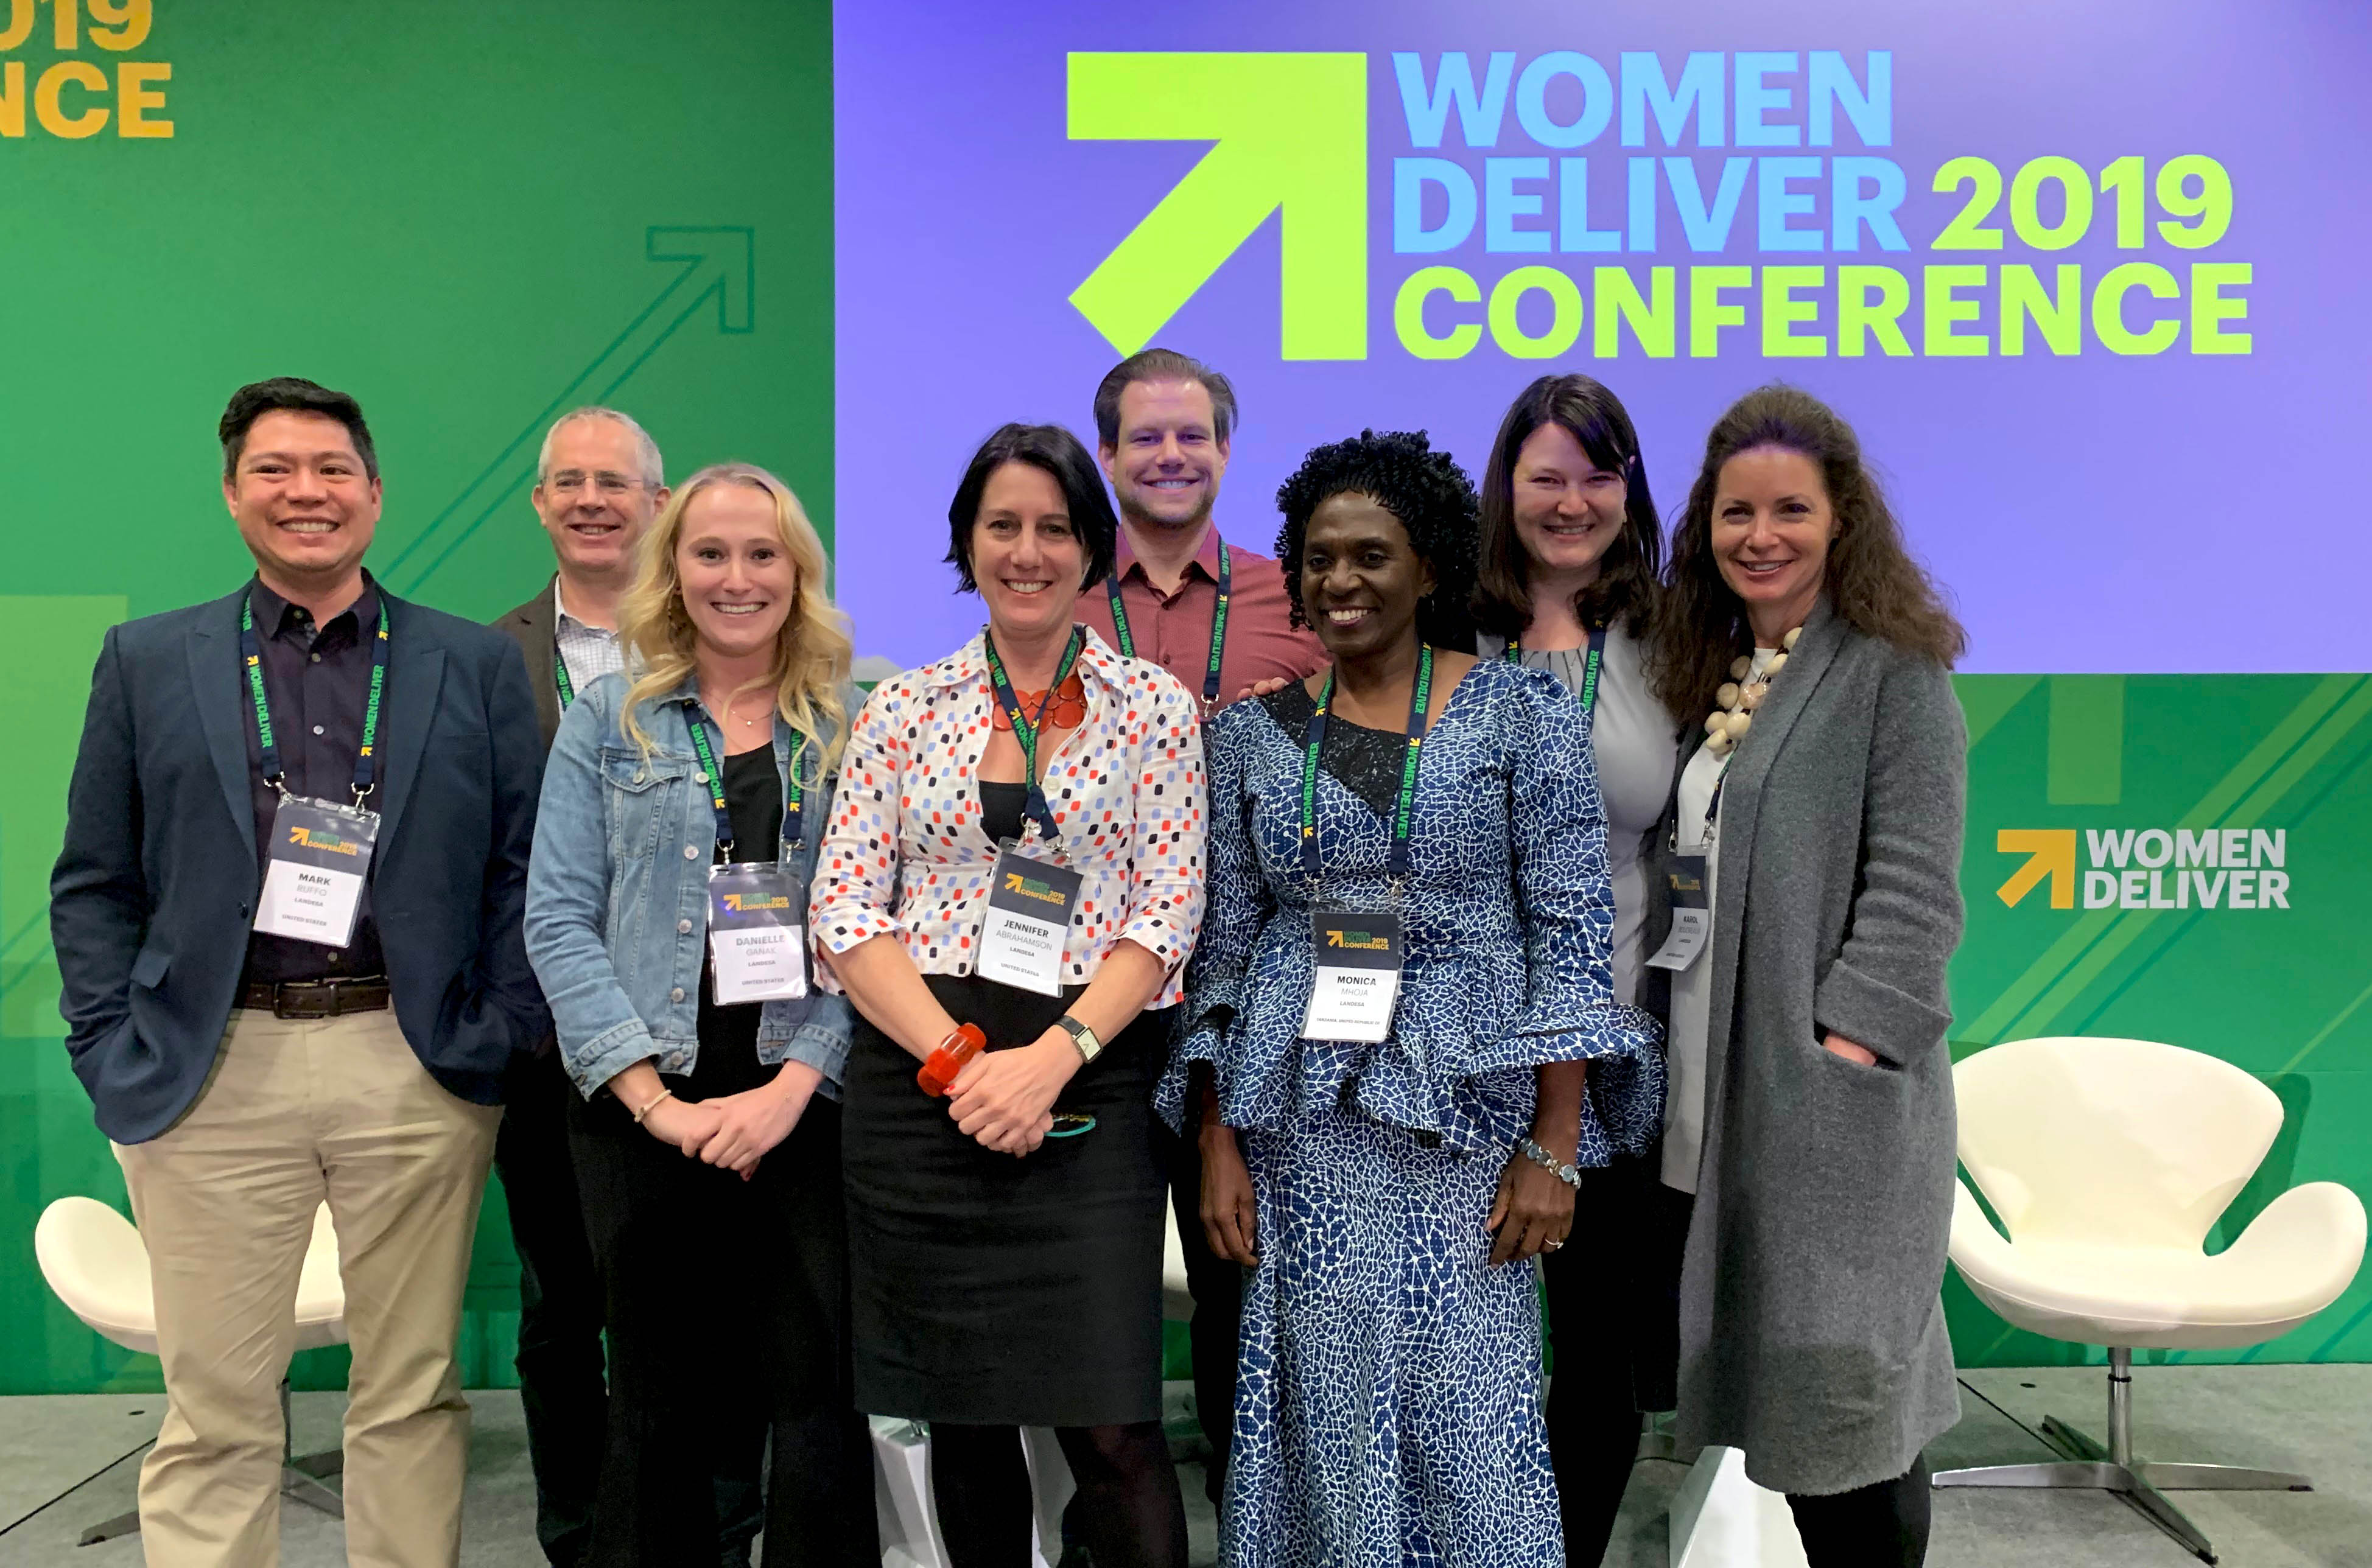 Group photo of Landesa staff attending the Women Deliver conference.